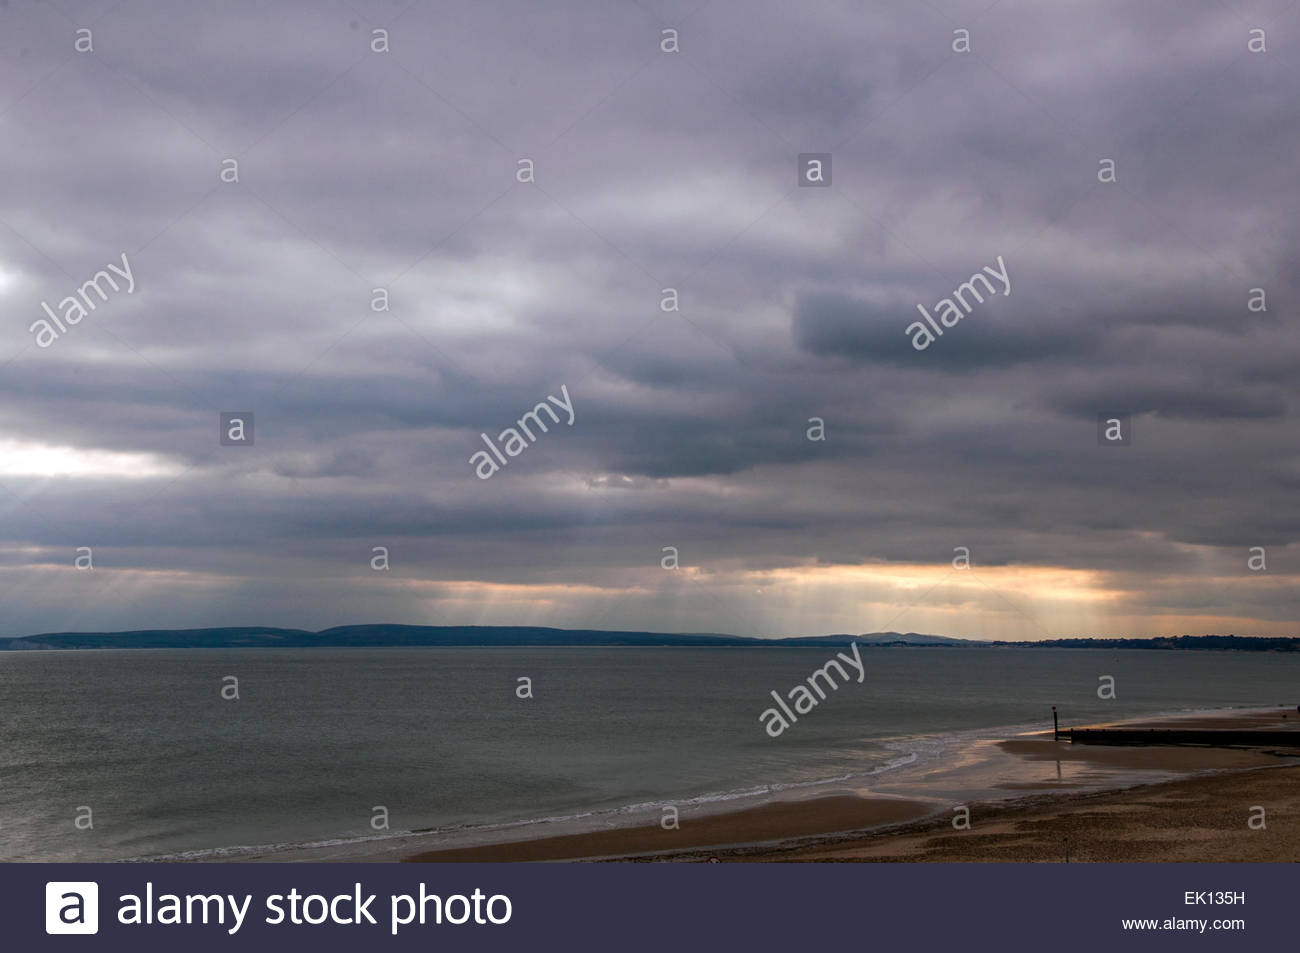 Bournemouth, Dorset, England. 4th April 2015. UK weather. Rays of sunshine break through the clouds over the Purbecs, - Stock Image